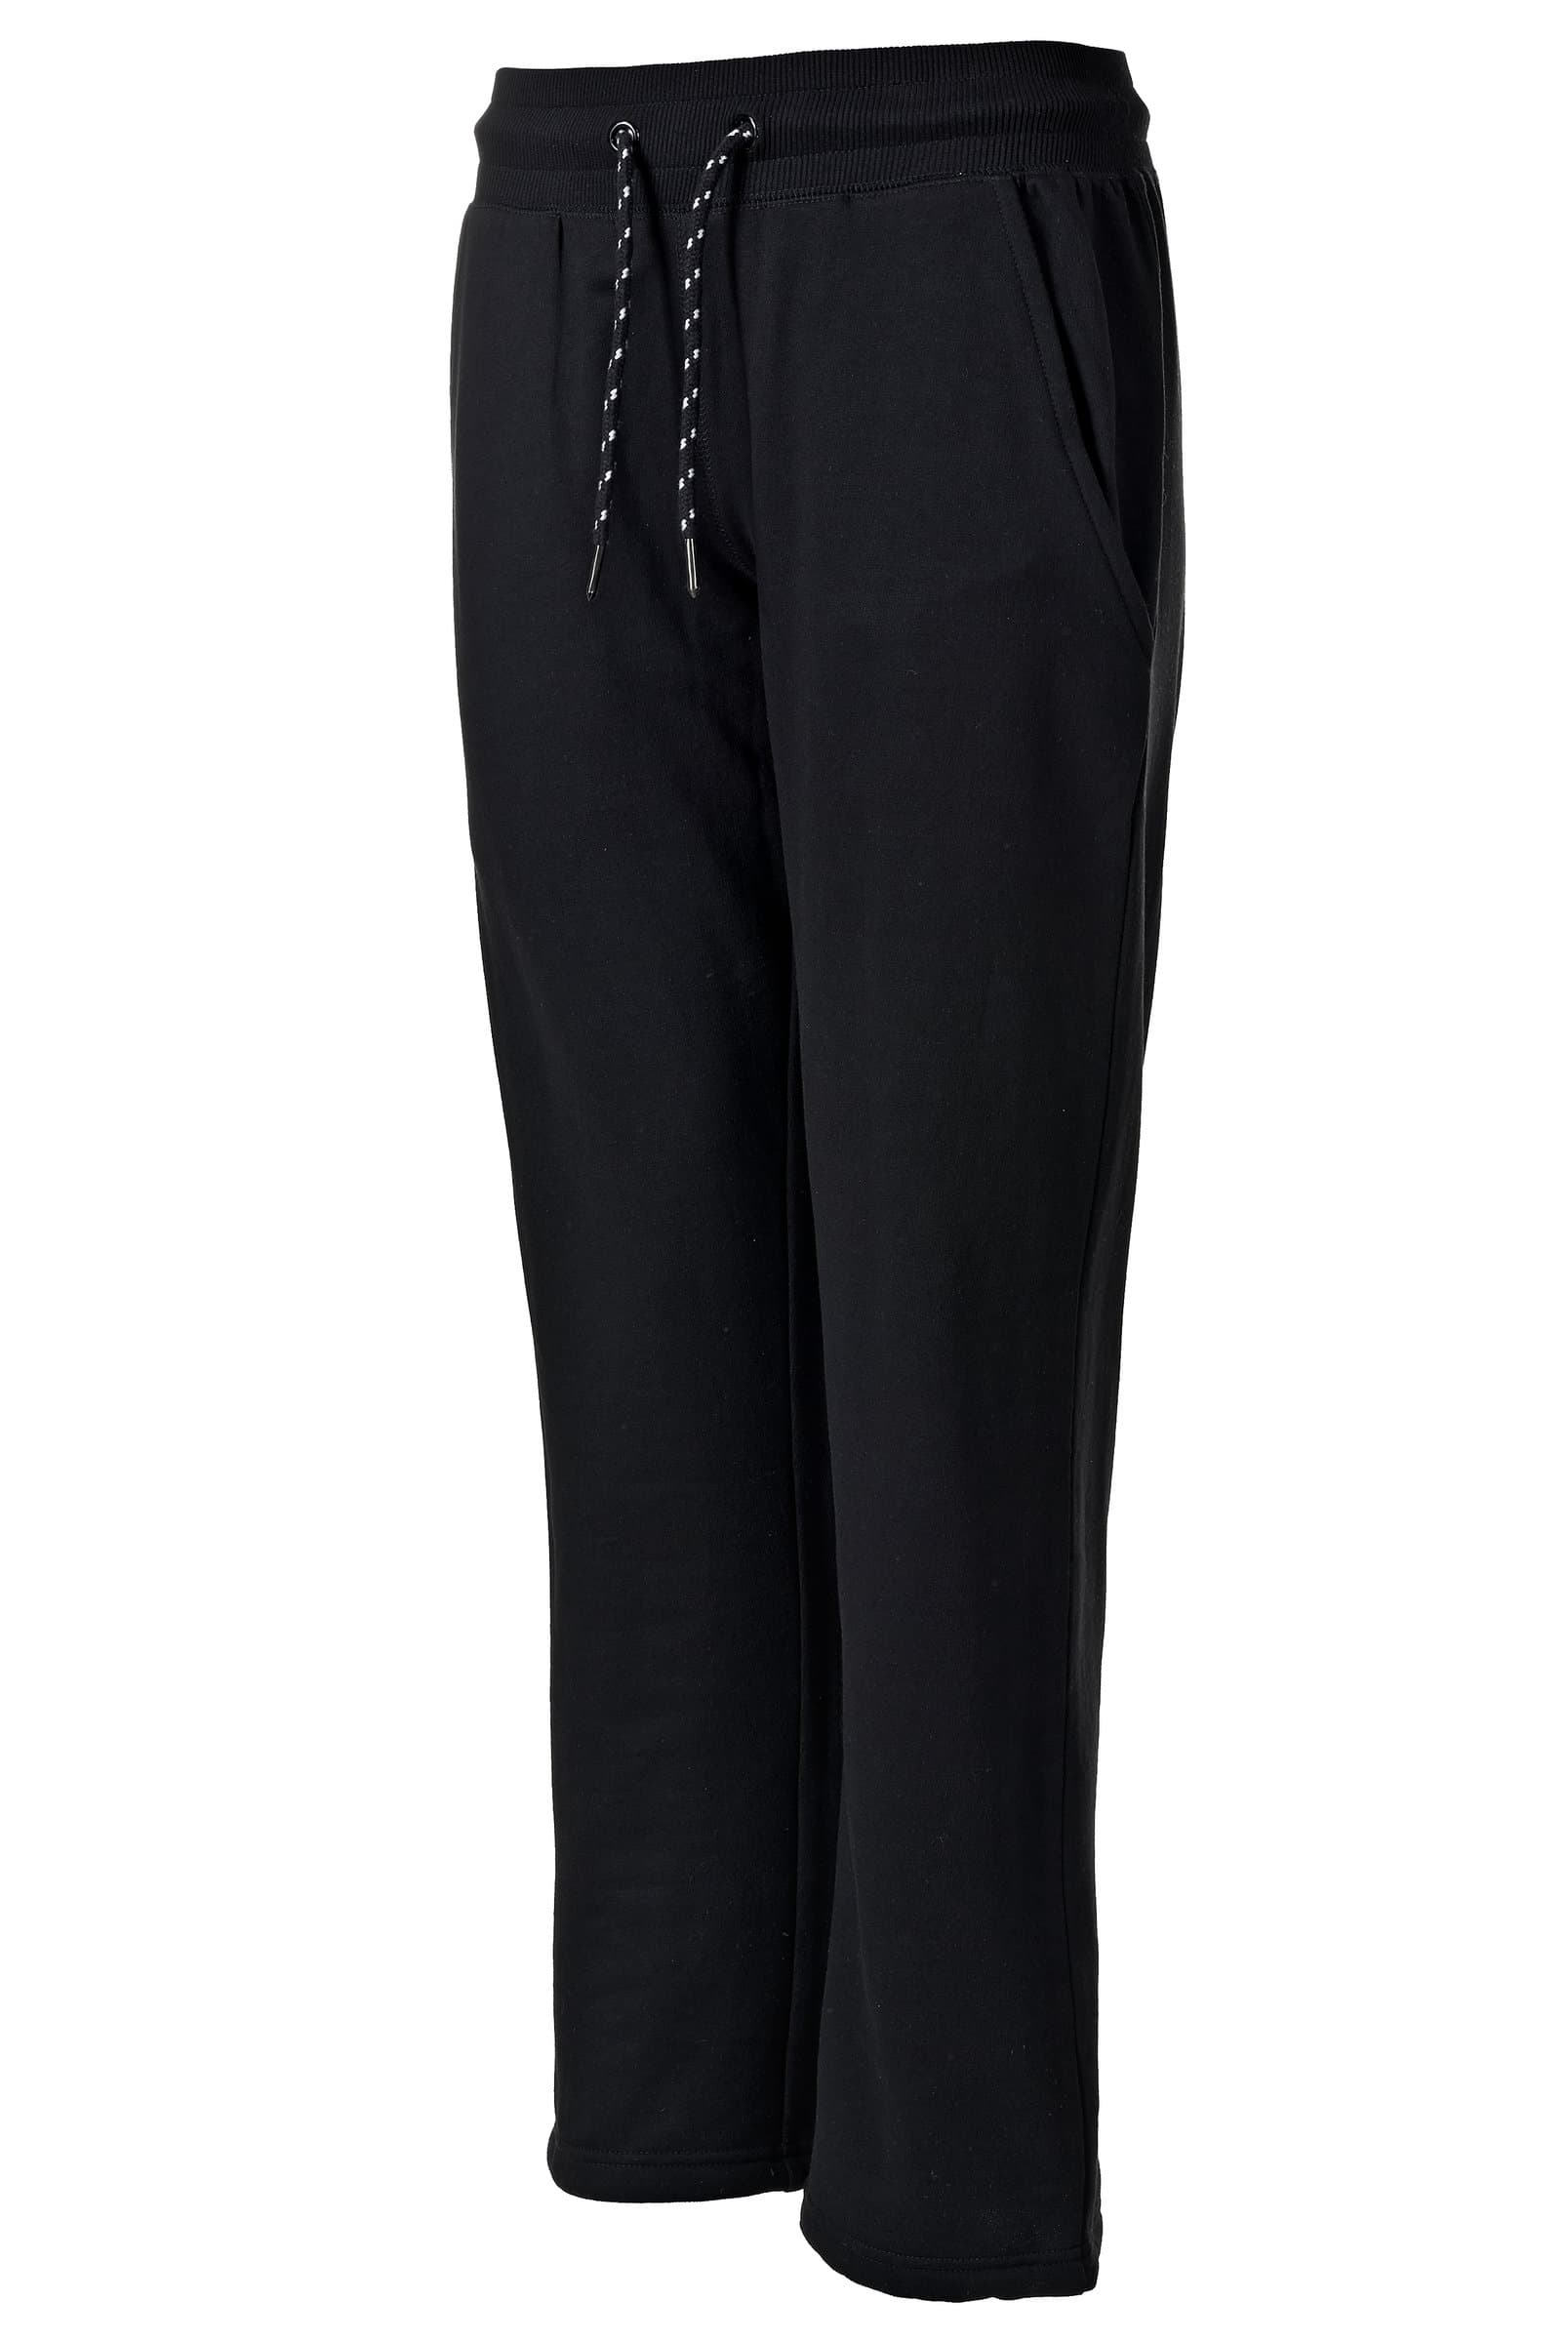 Extend SWEATPANT EVA SHORTSIZE Damen-Hose